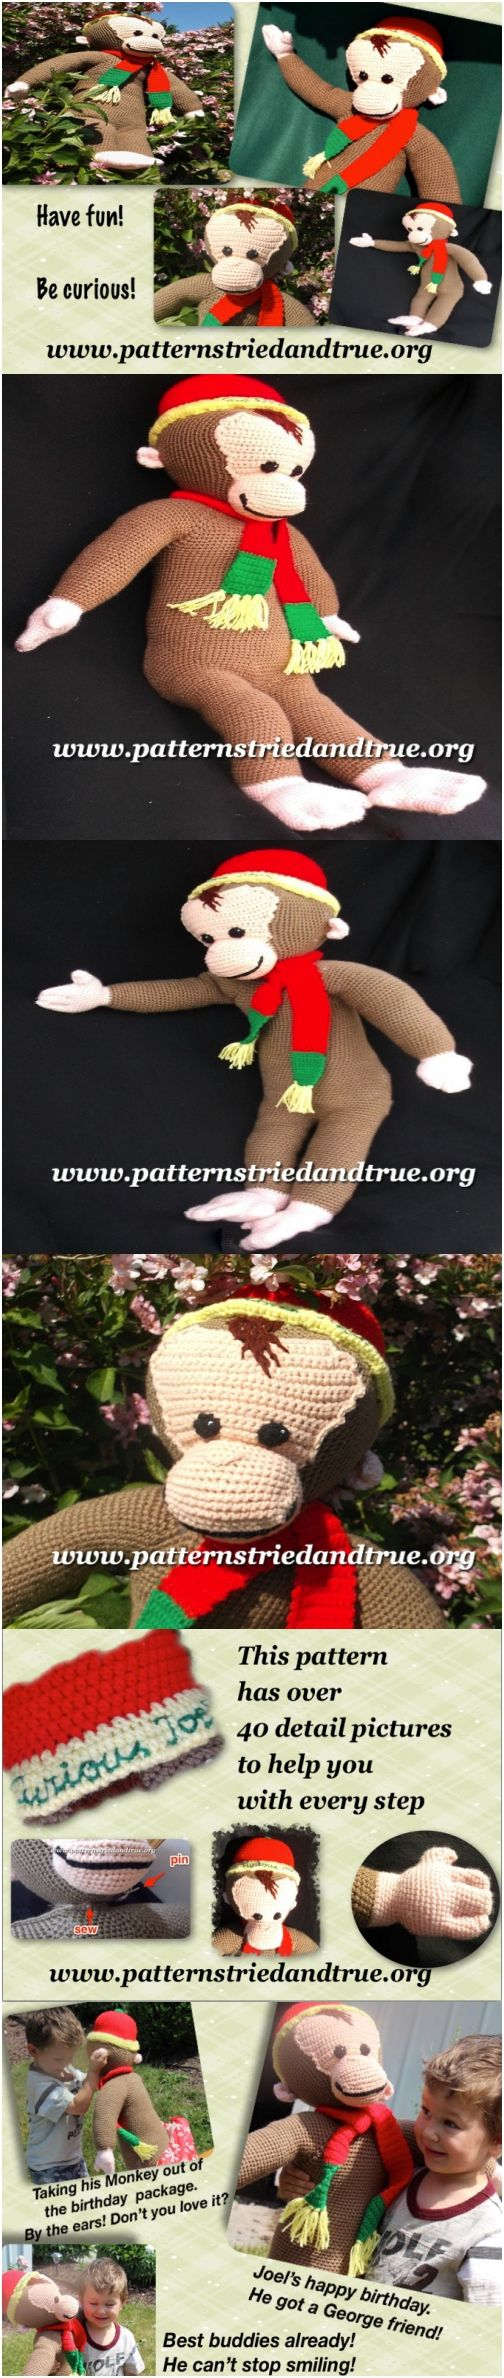 Crochet Monkey Pattern, Curious George, easy to follow to make kids their favorite monkey, Classic children's toy in heirloom quality